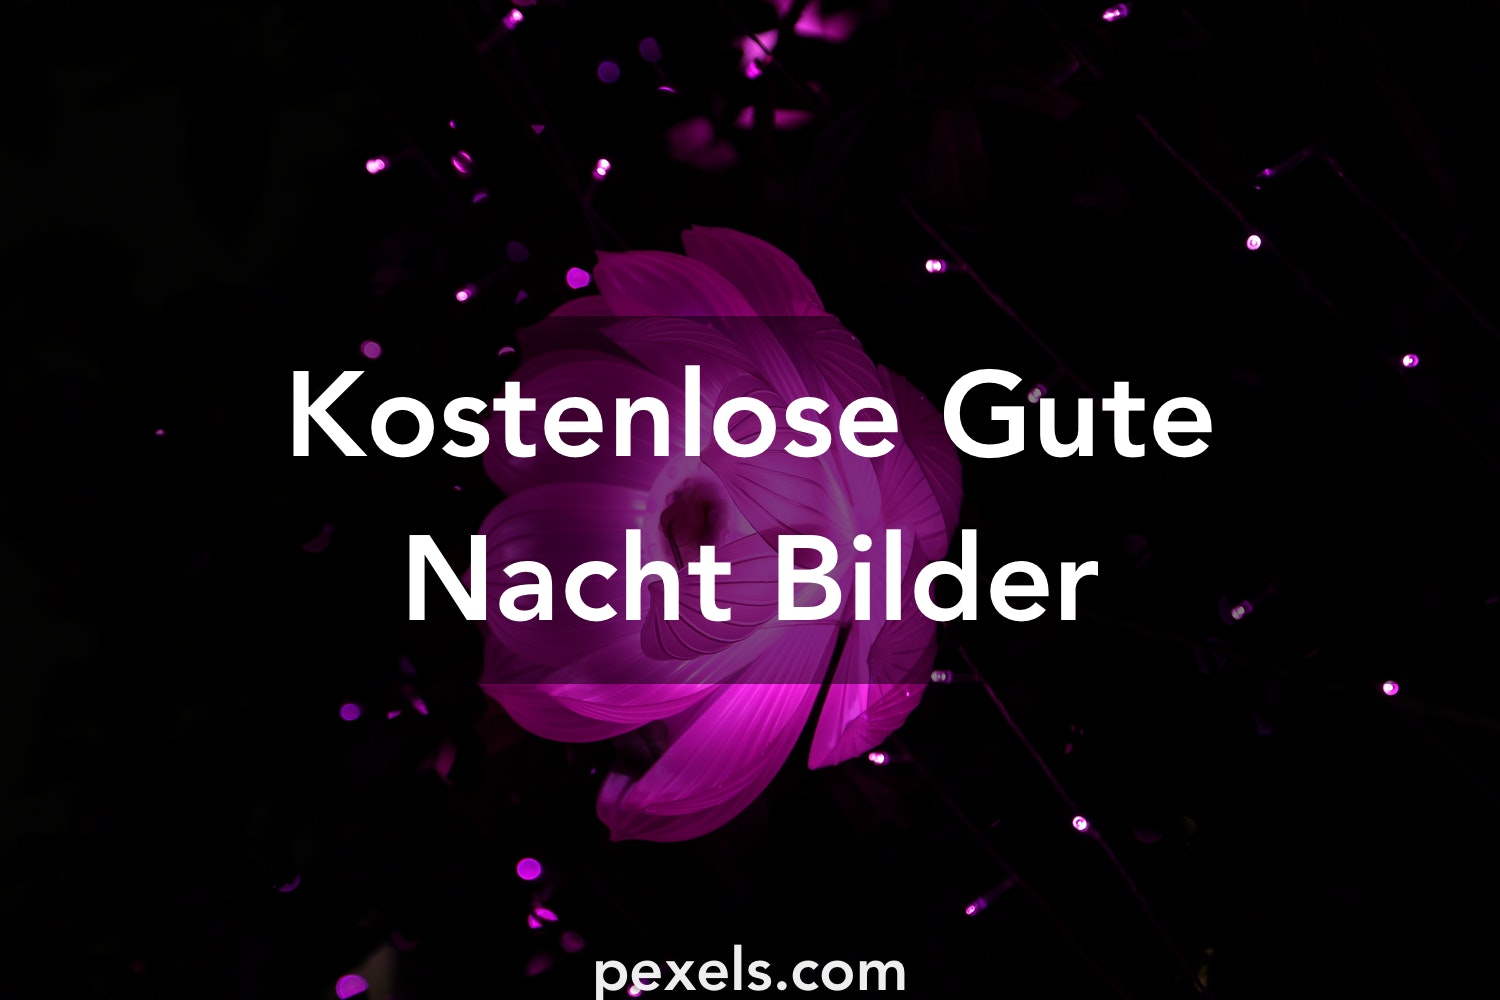 1000 gute nacht fotos pexels kostenlose stock fotos. Black Bedroom Furniture Sets. Home Design Ideas